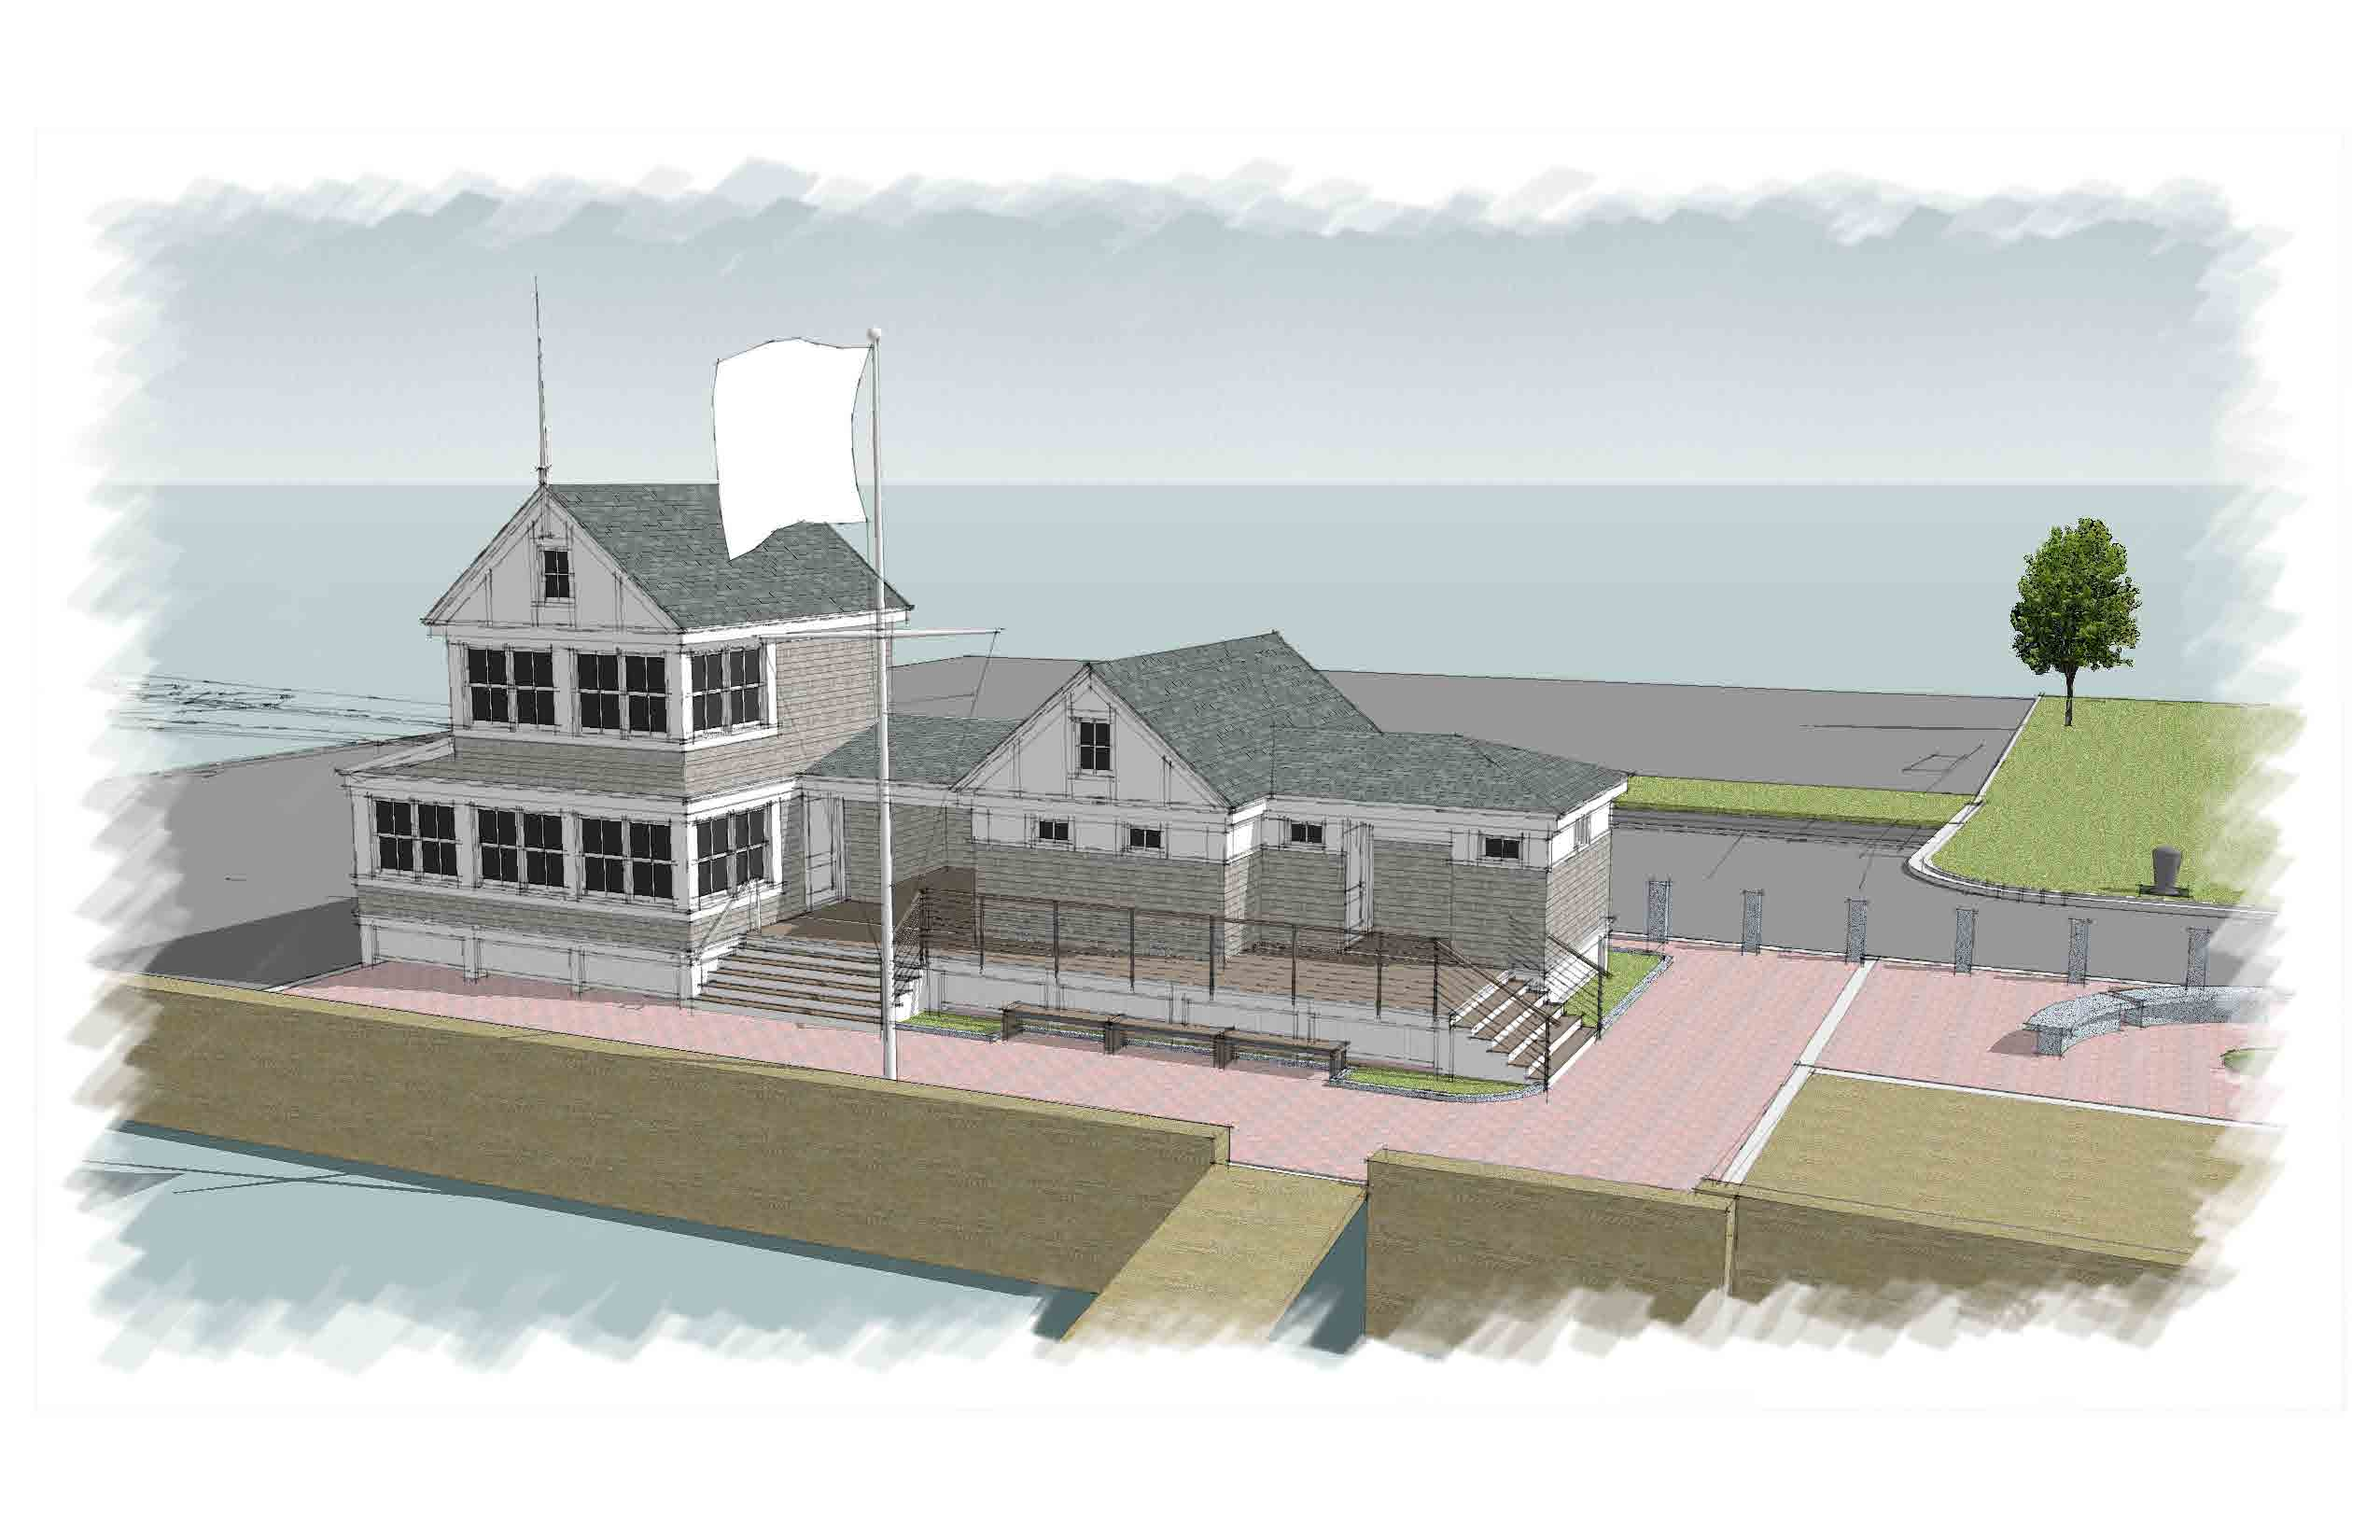 Newburyport Harbormaster Project